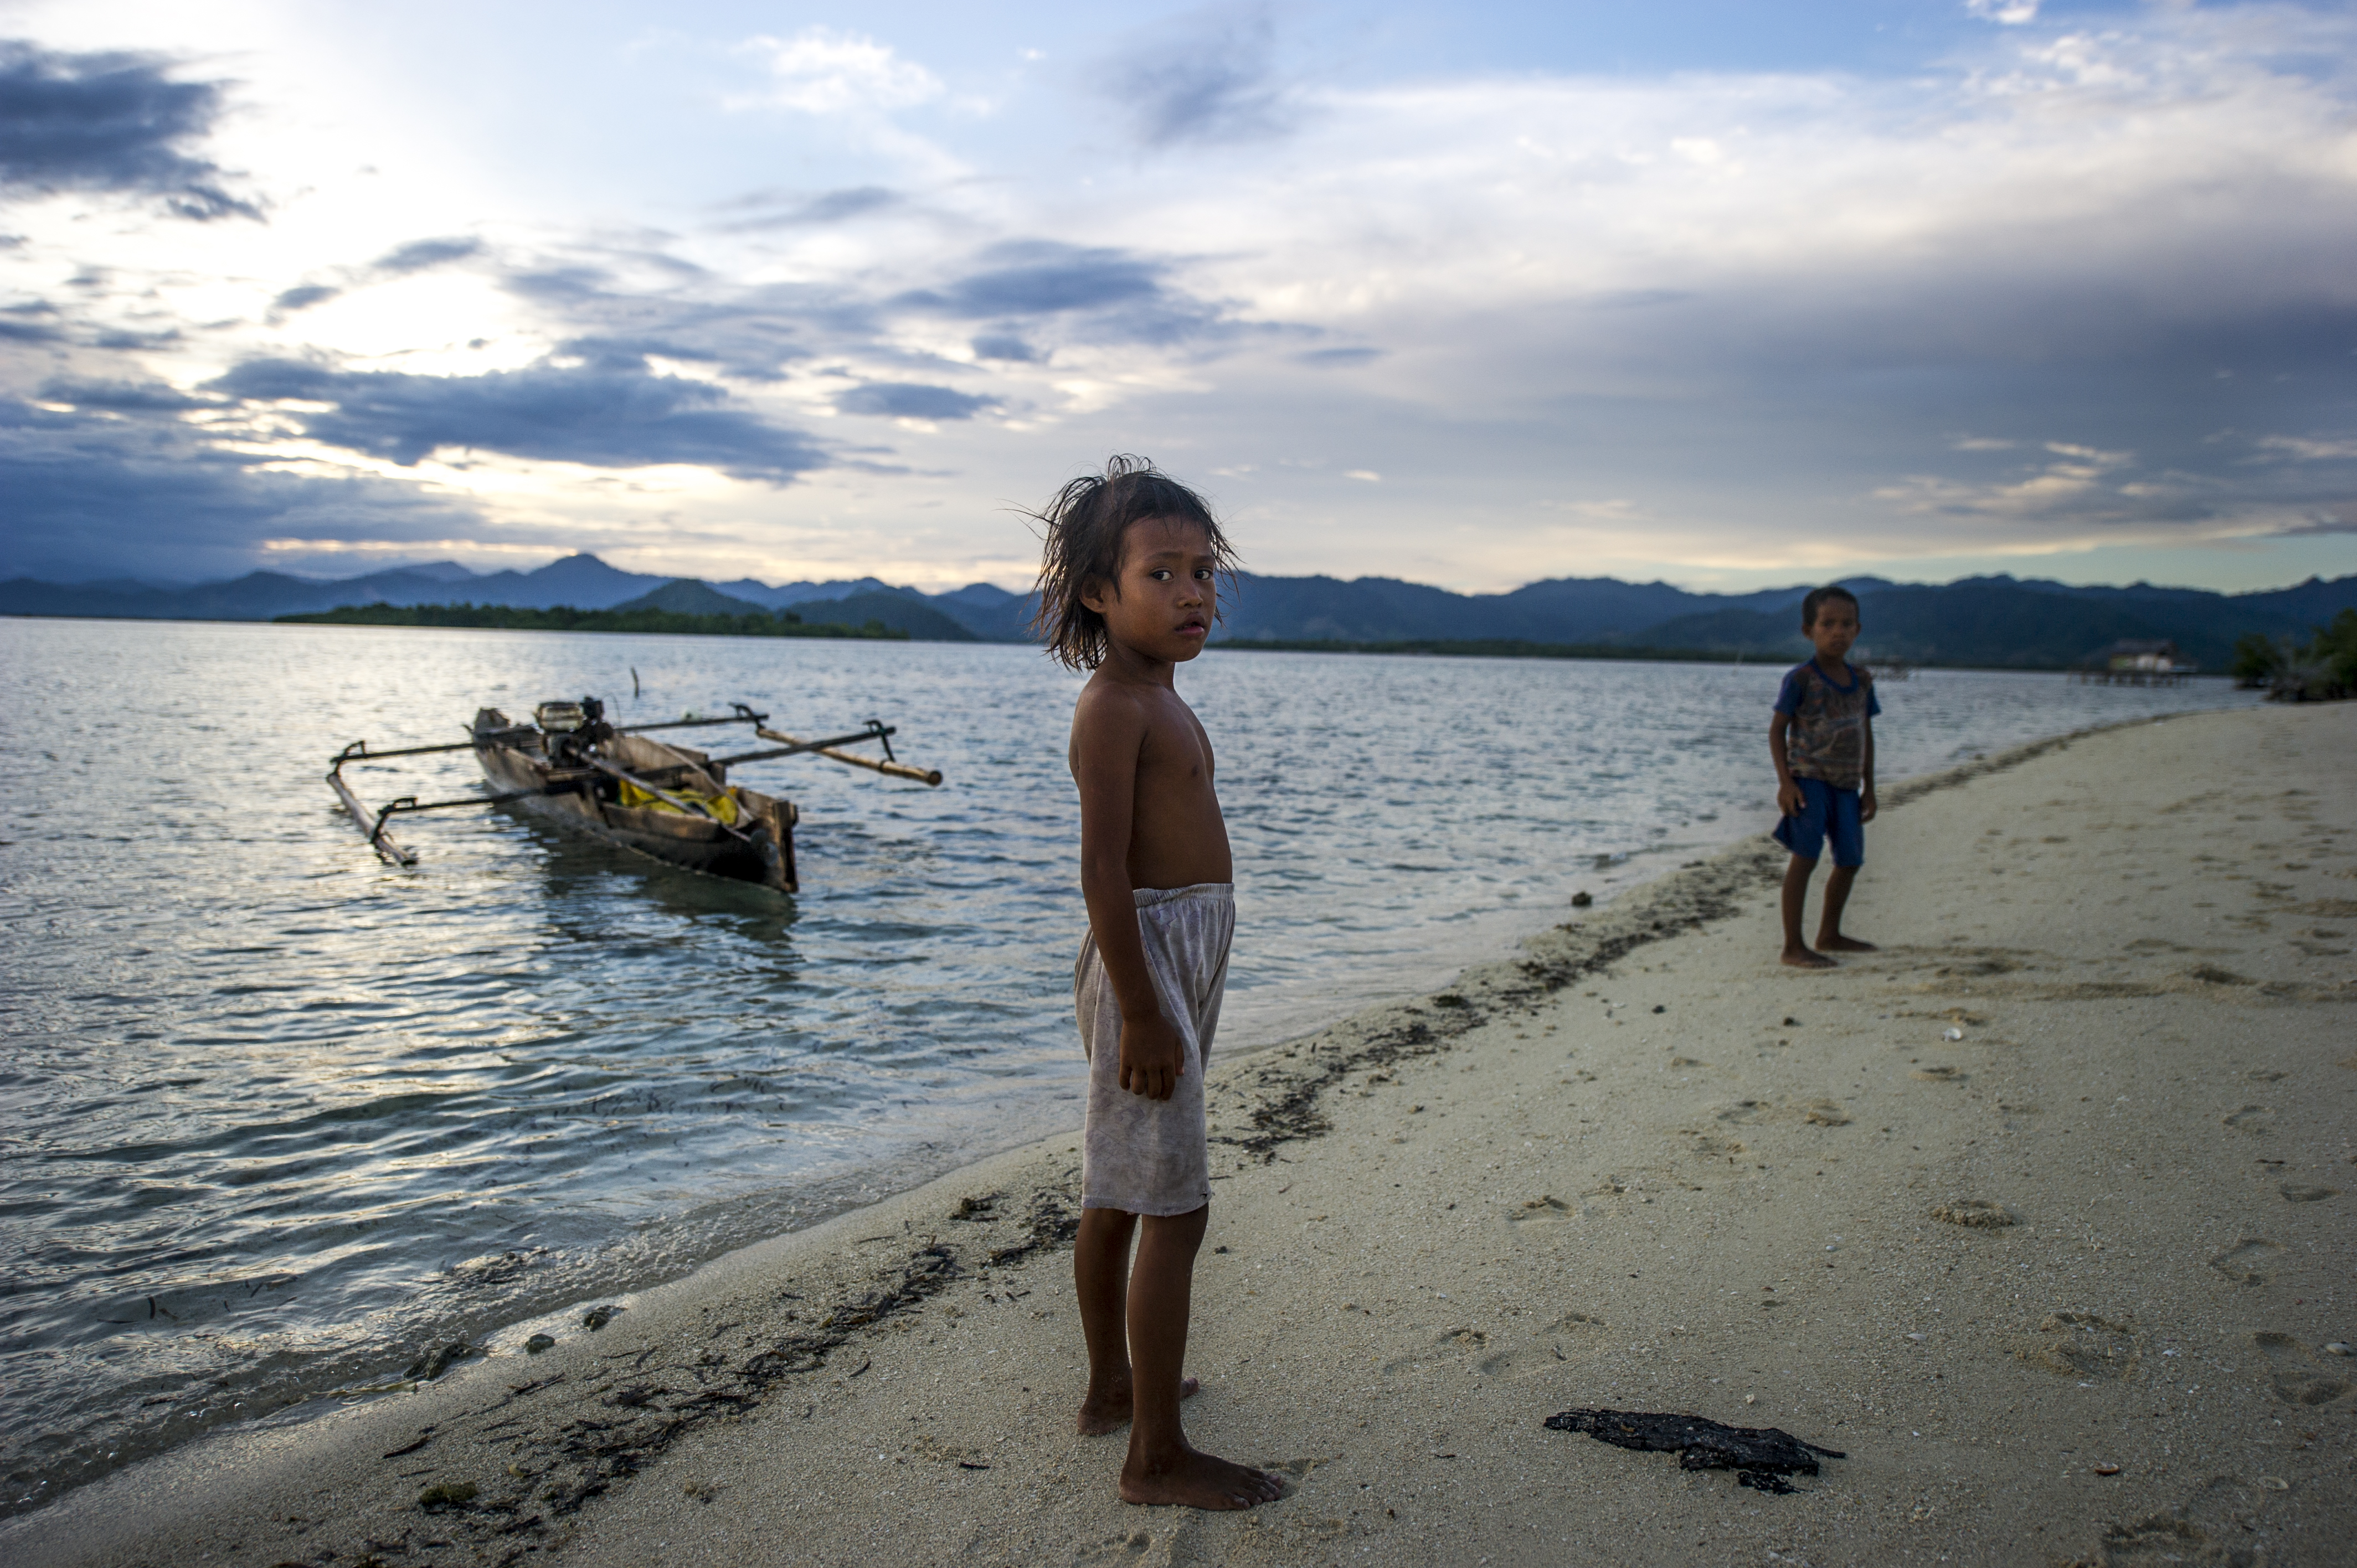 Children from a Bajau family that took up residence on an uninhabited island. Unable to eke out a living ashore they have turned back to the sea to sustain themselves.